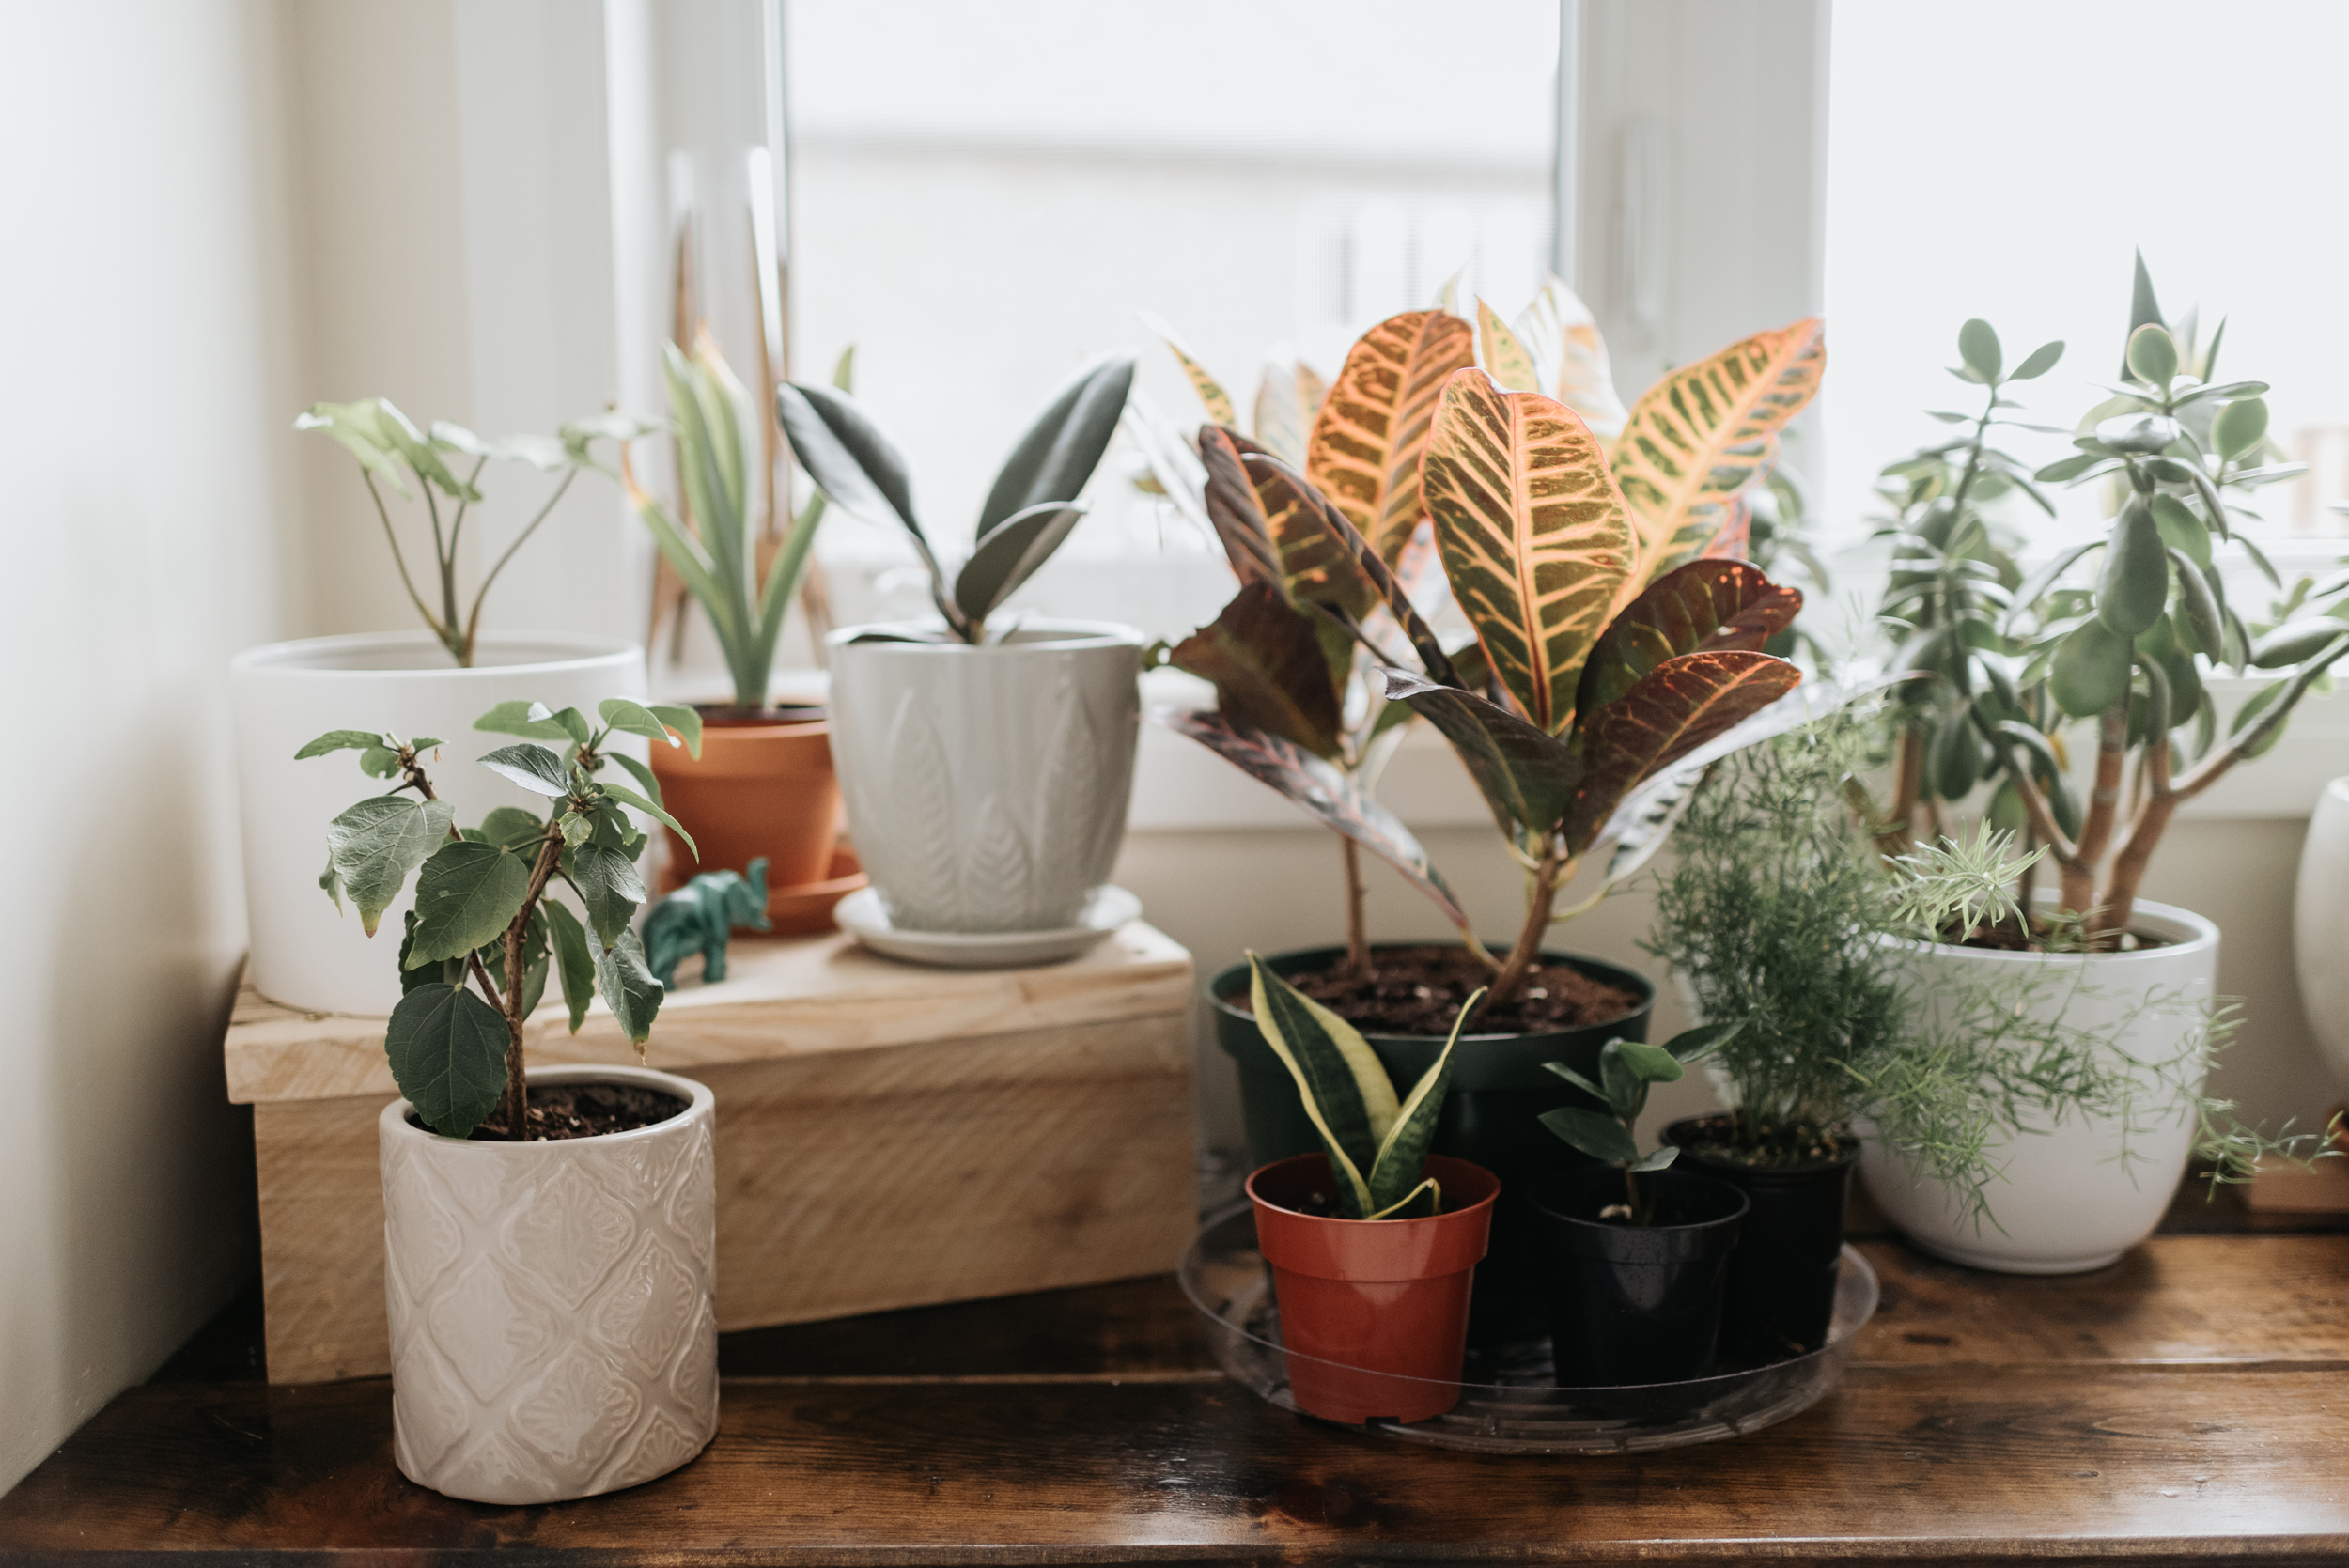 The 6 best indoor plants and how to care for them